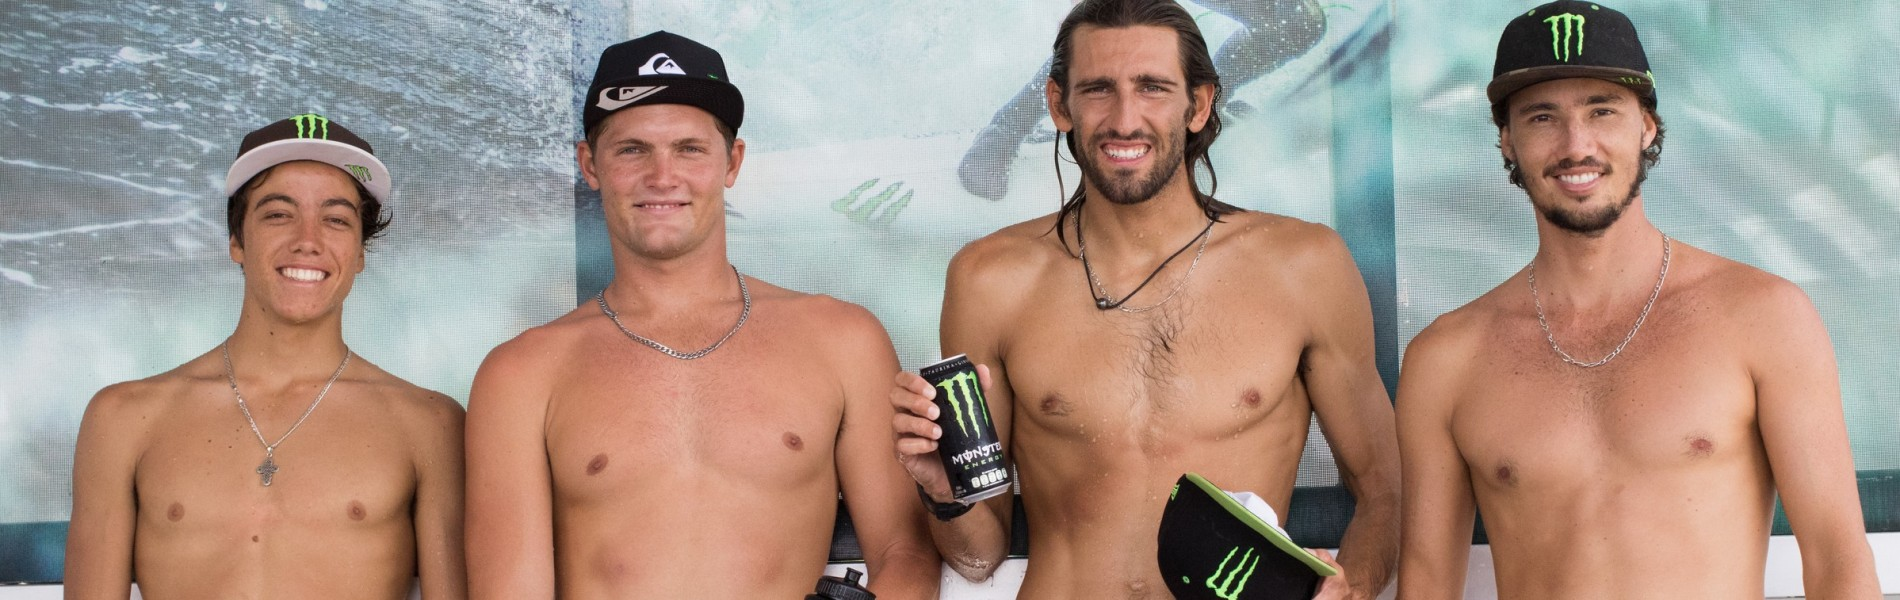 Monster Energy surfers together at VANS Surf Open Acapulco